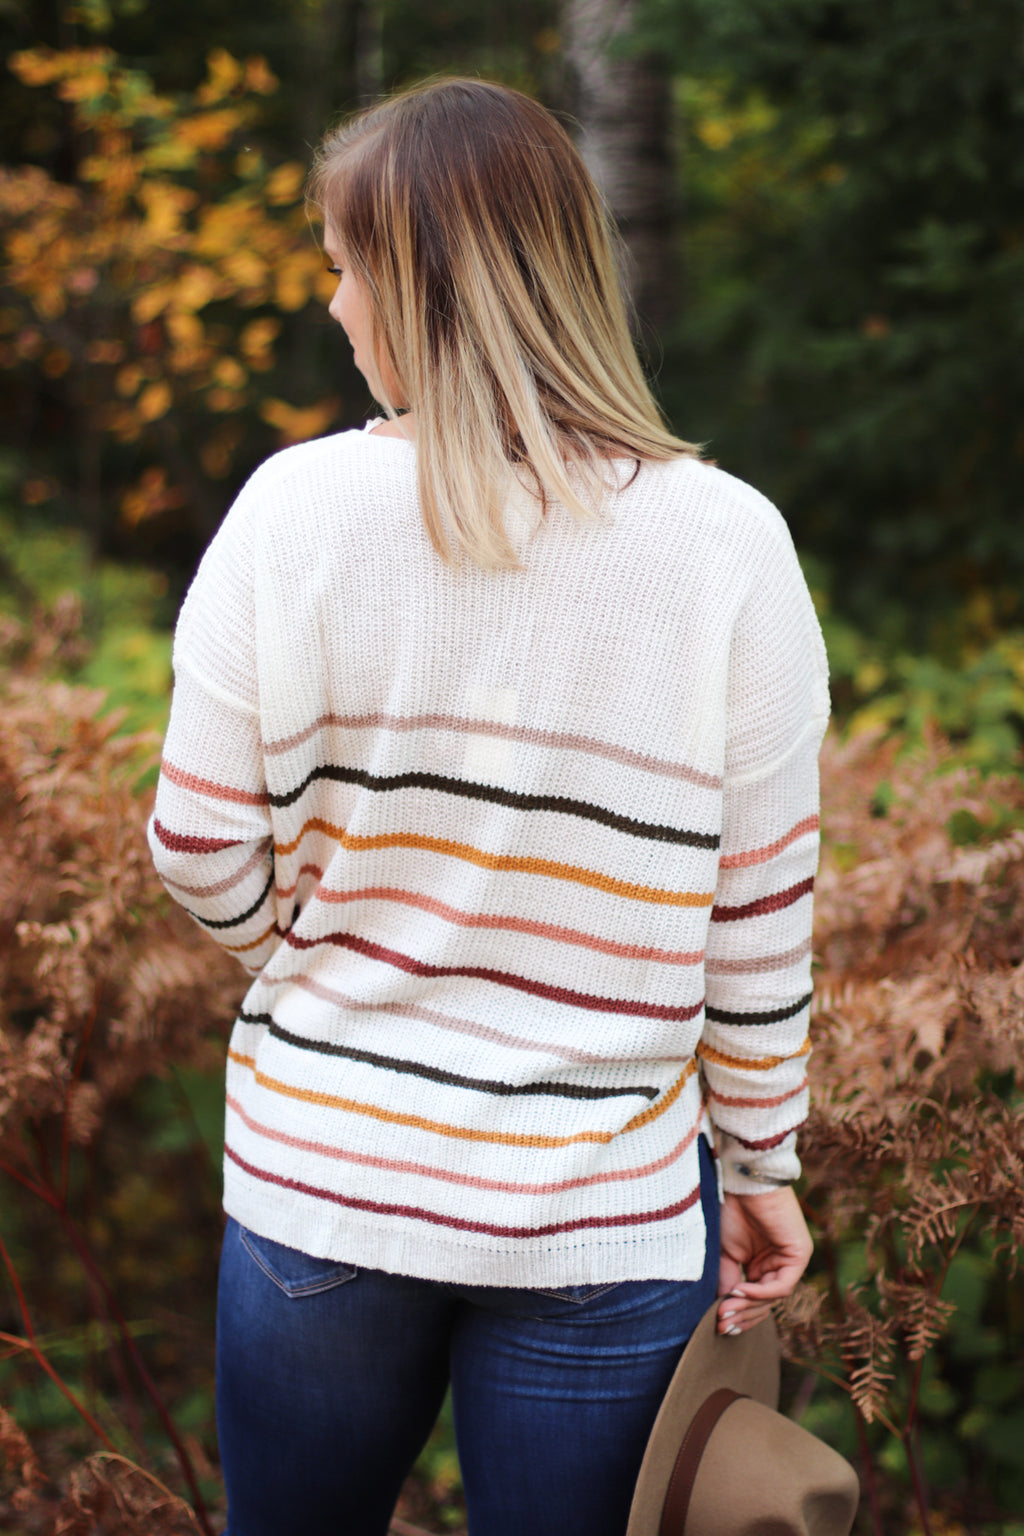 The Ripley Striped Sweater